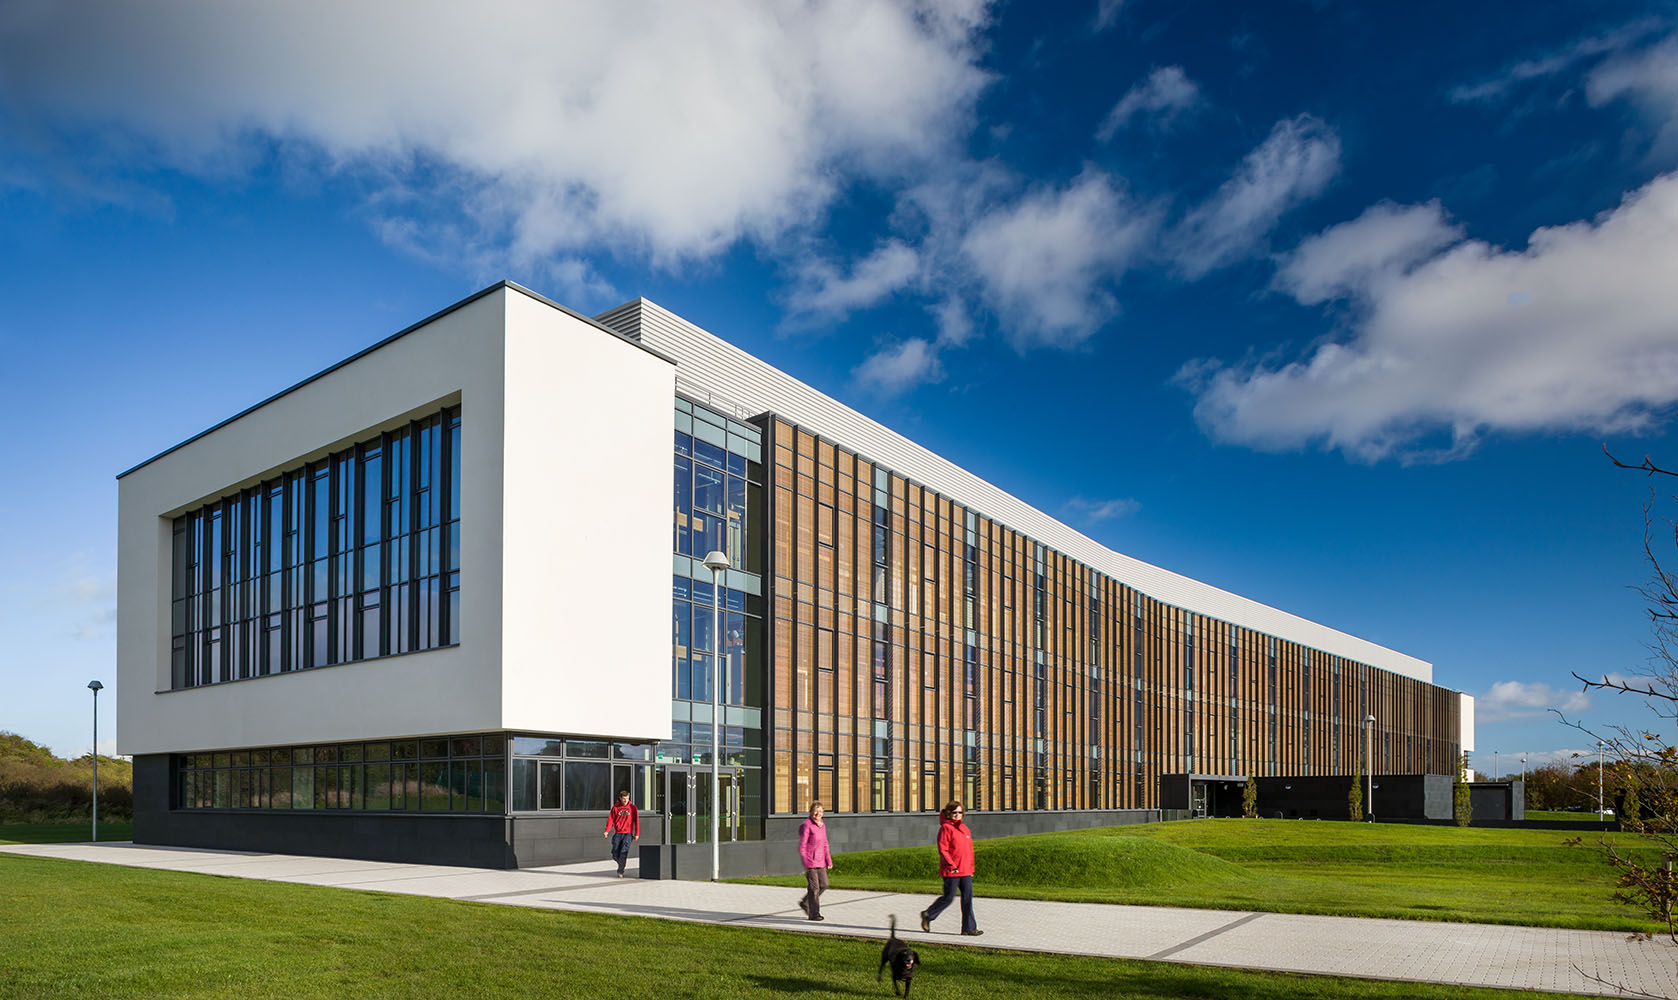 Biosciences Research Building, National University of Ireland, Galway